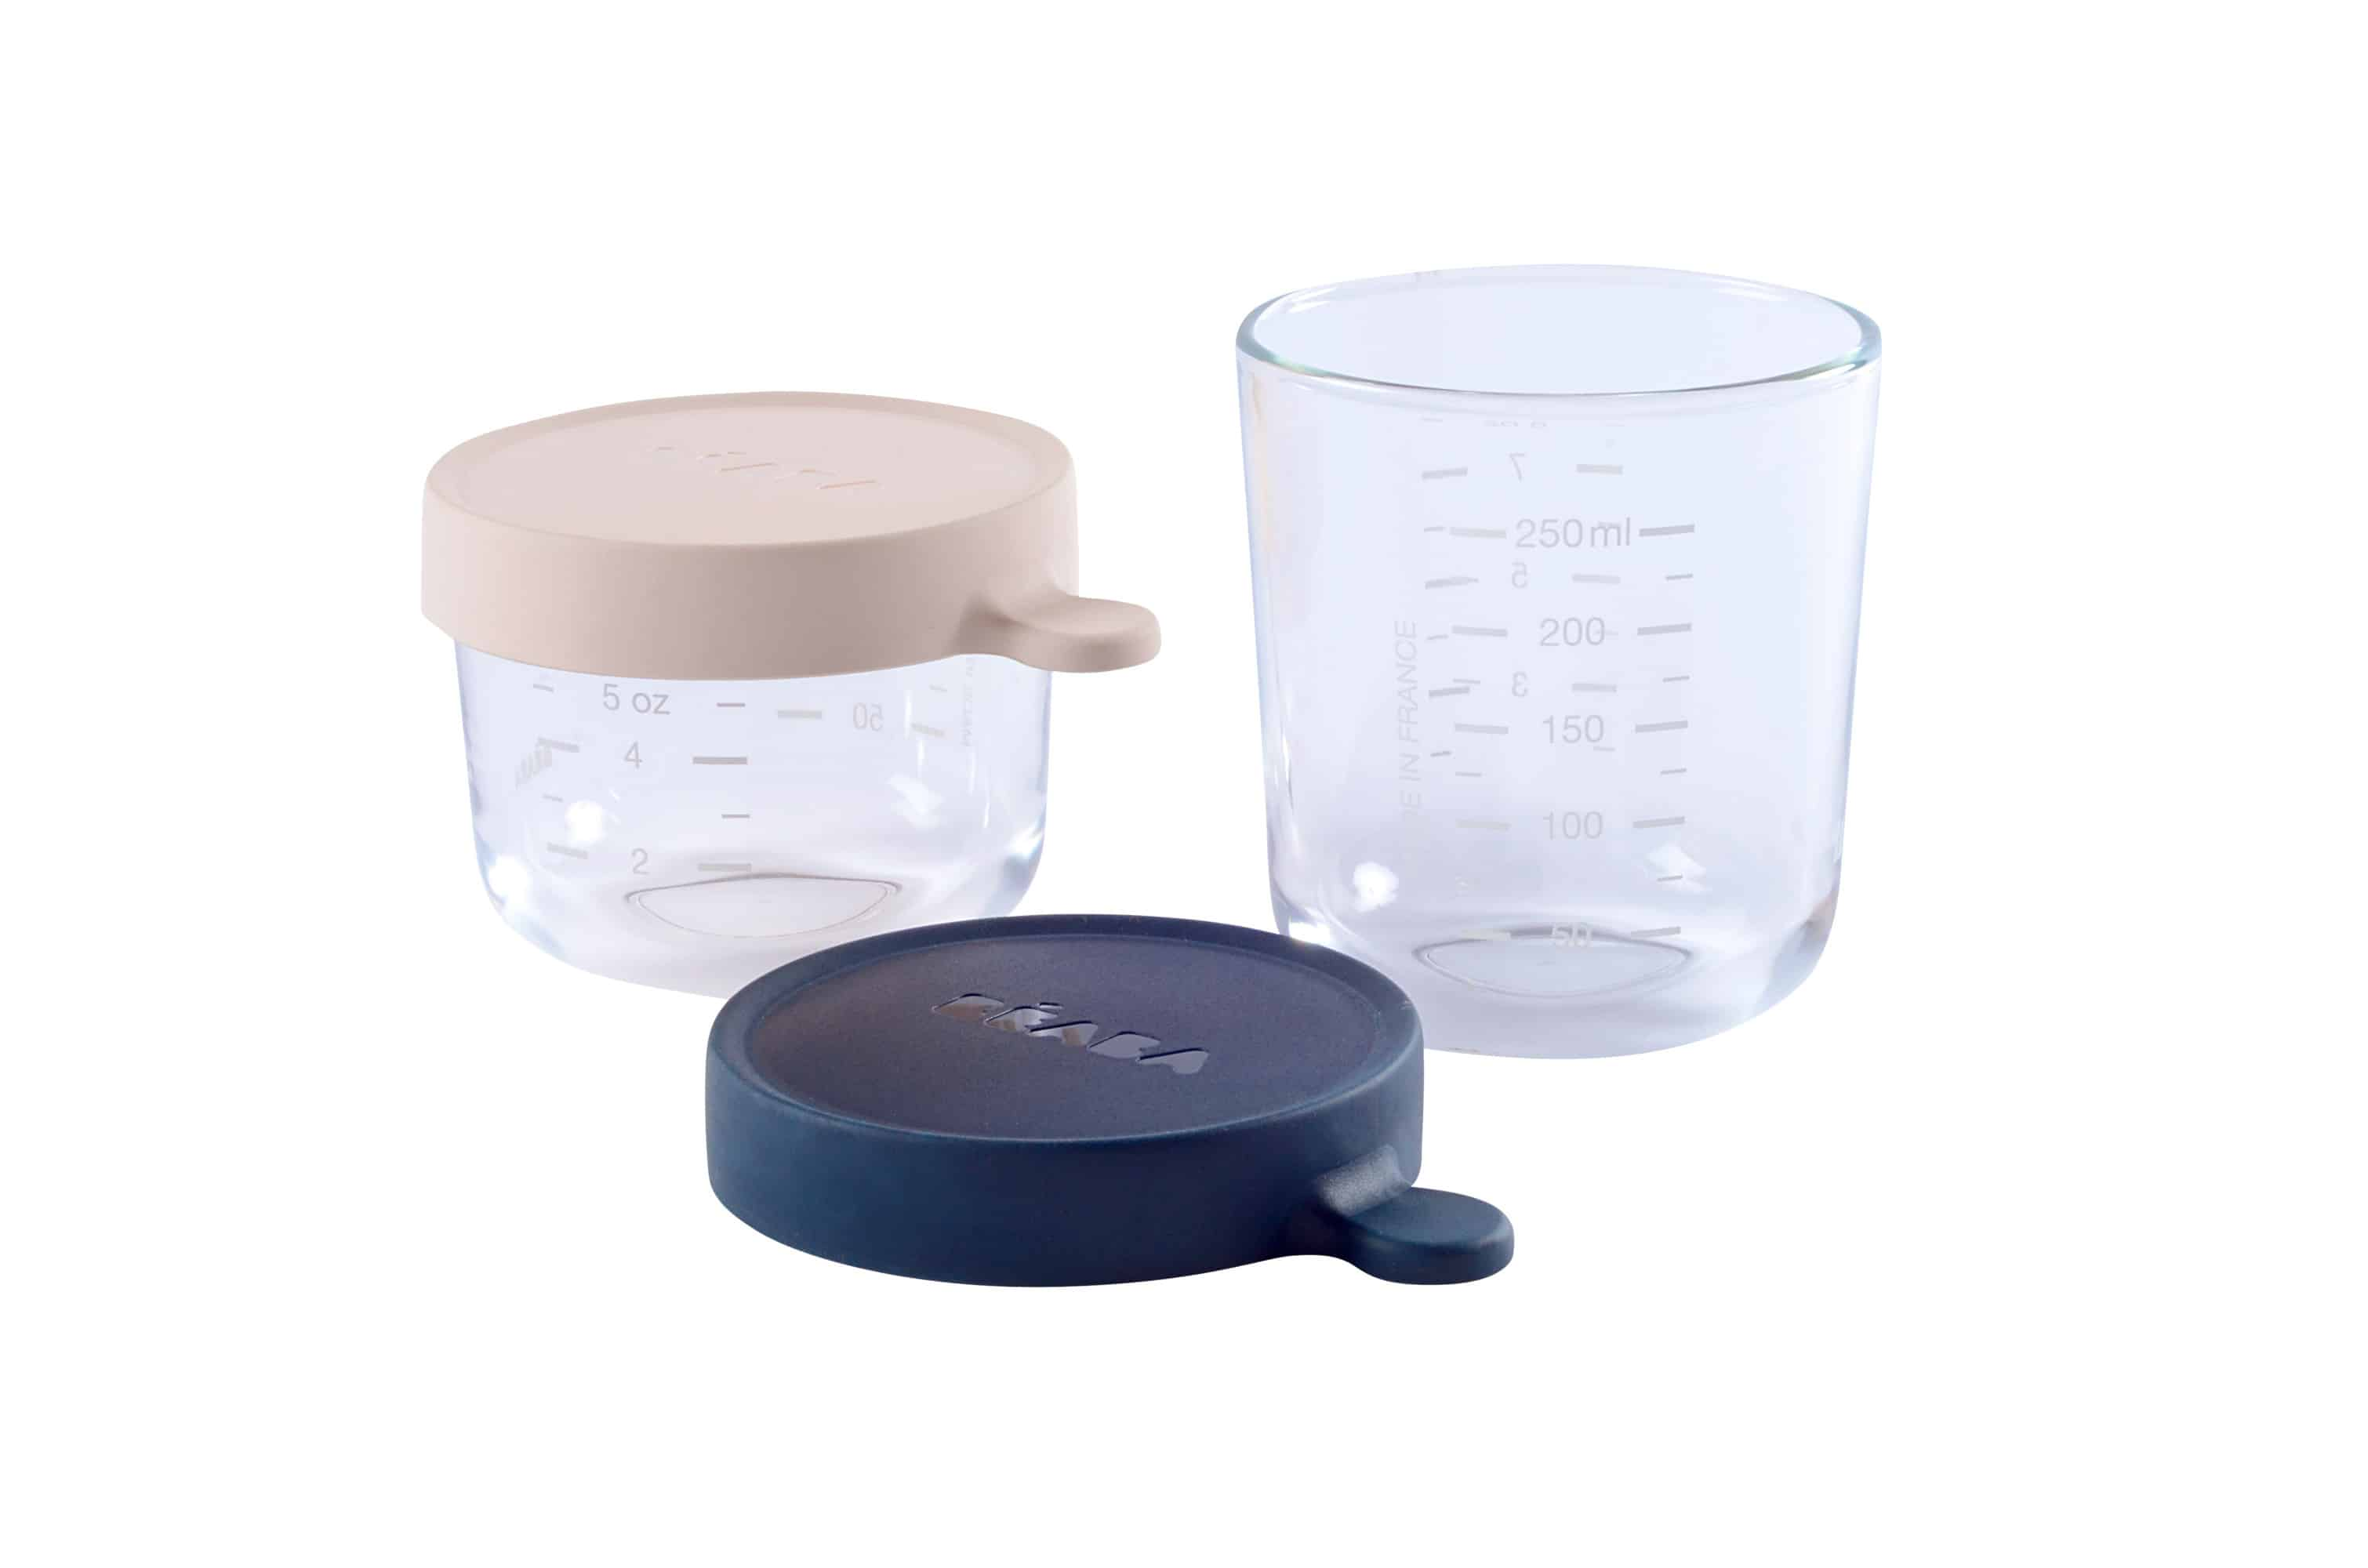 af3a3be1f87b Béaba Glass & Silicone Containers - Set of 2 (5 oz and 8 oz) Pink/Dark Blue